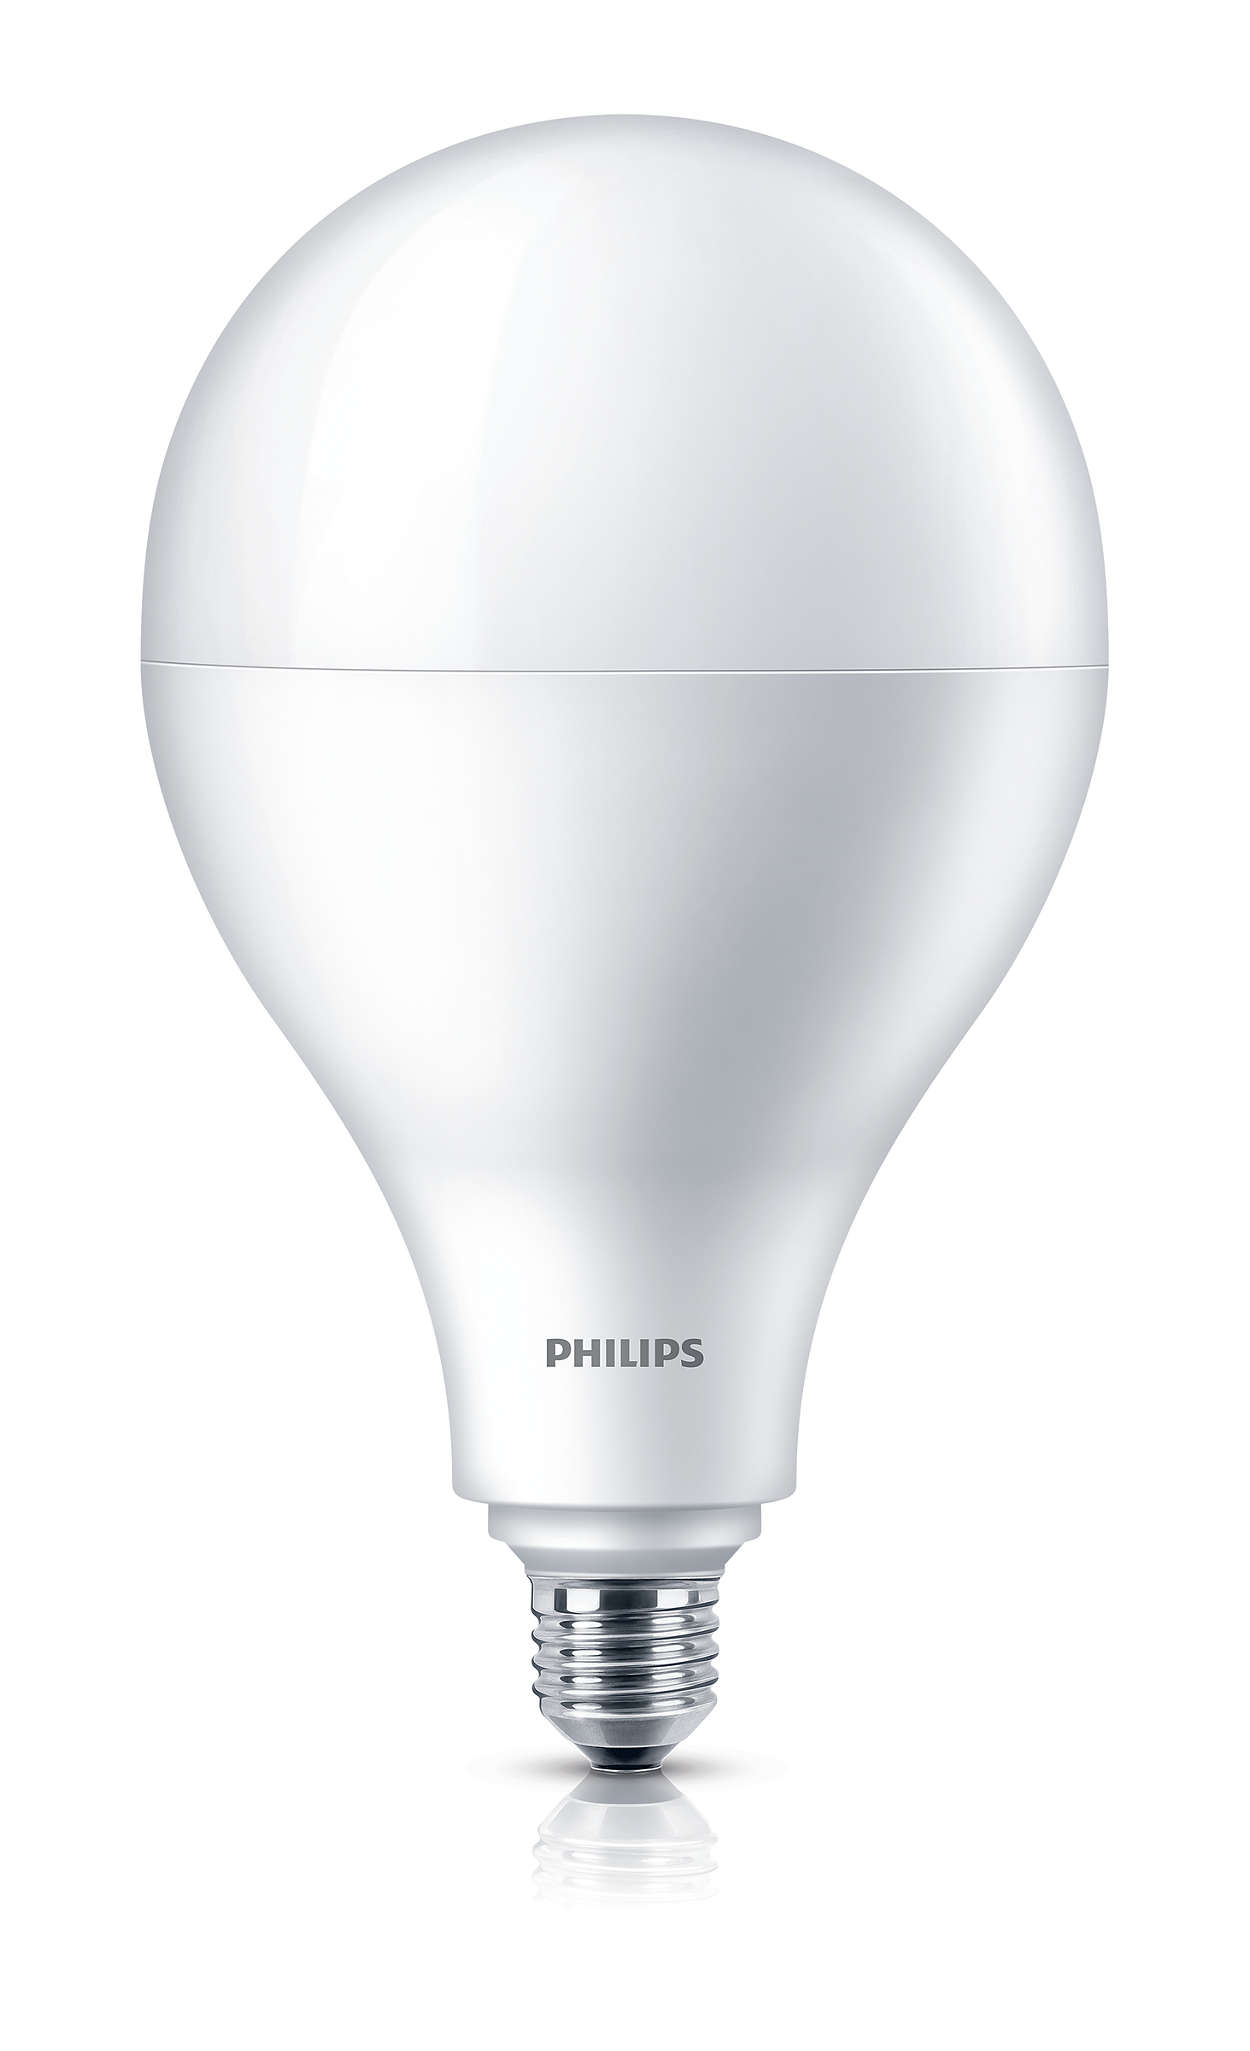 image philips bulb loading warm house a white can candle class bulbs itm energy lamp is led light